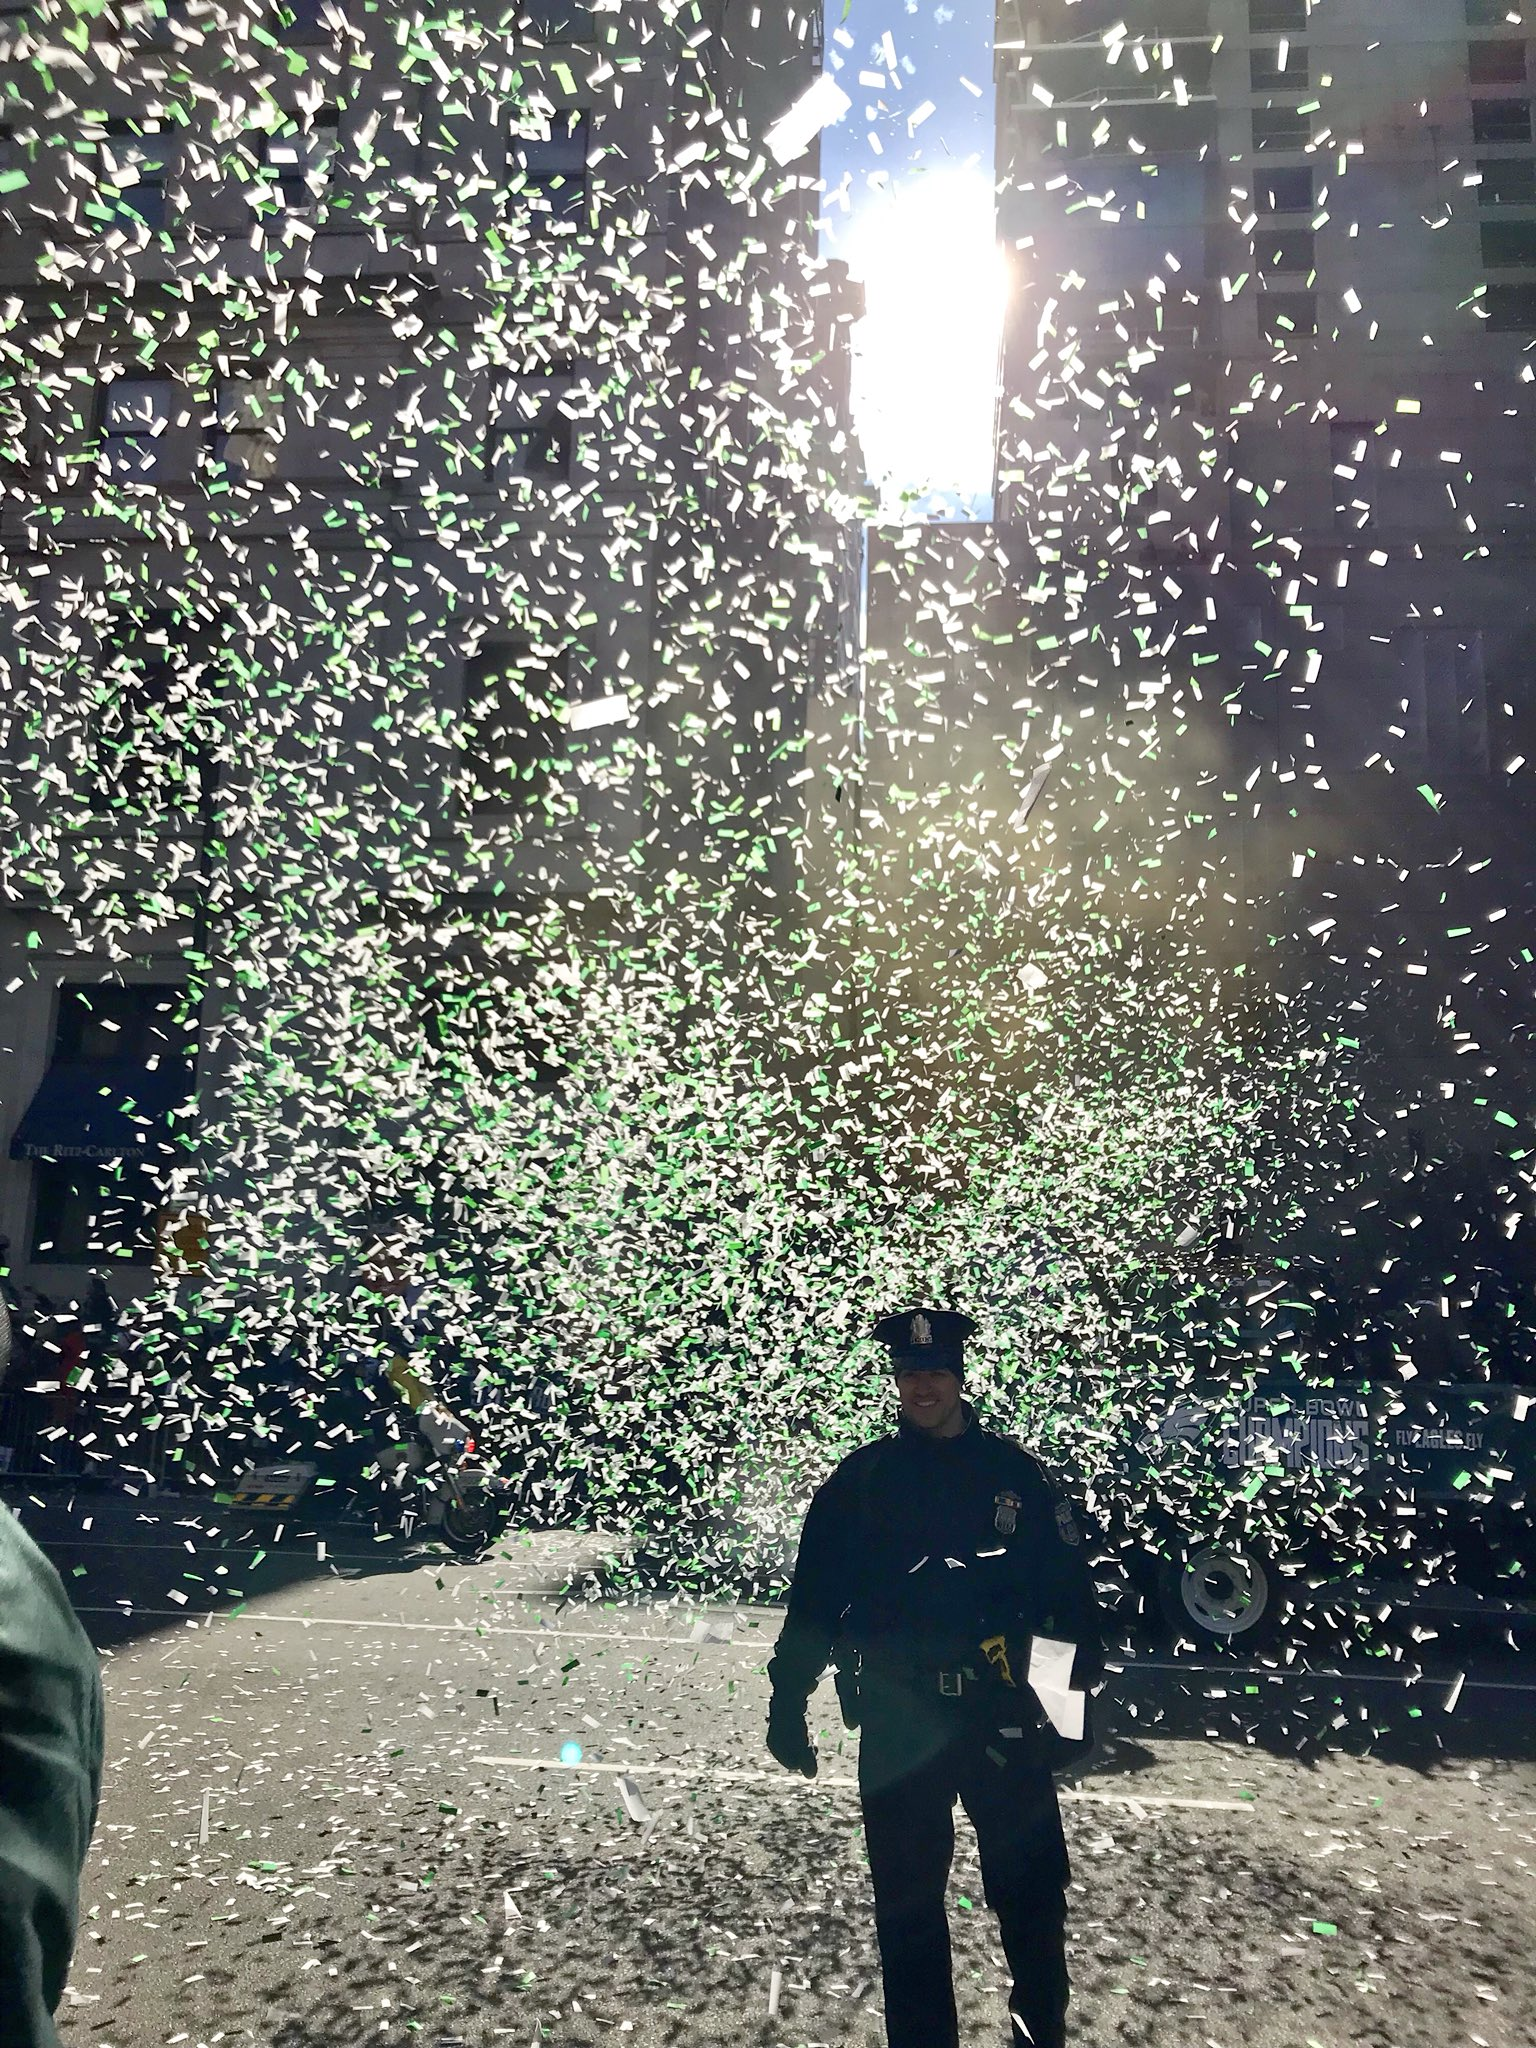 Philadelphia Police officer shrouded in Eagles glitter. Credit: Kim Jordan